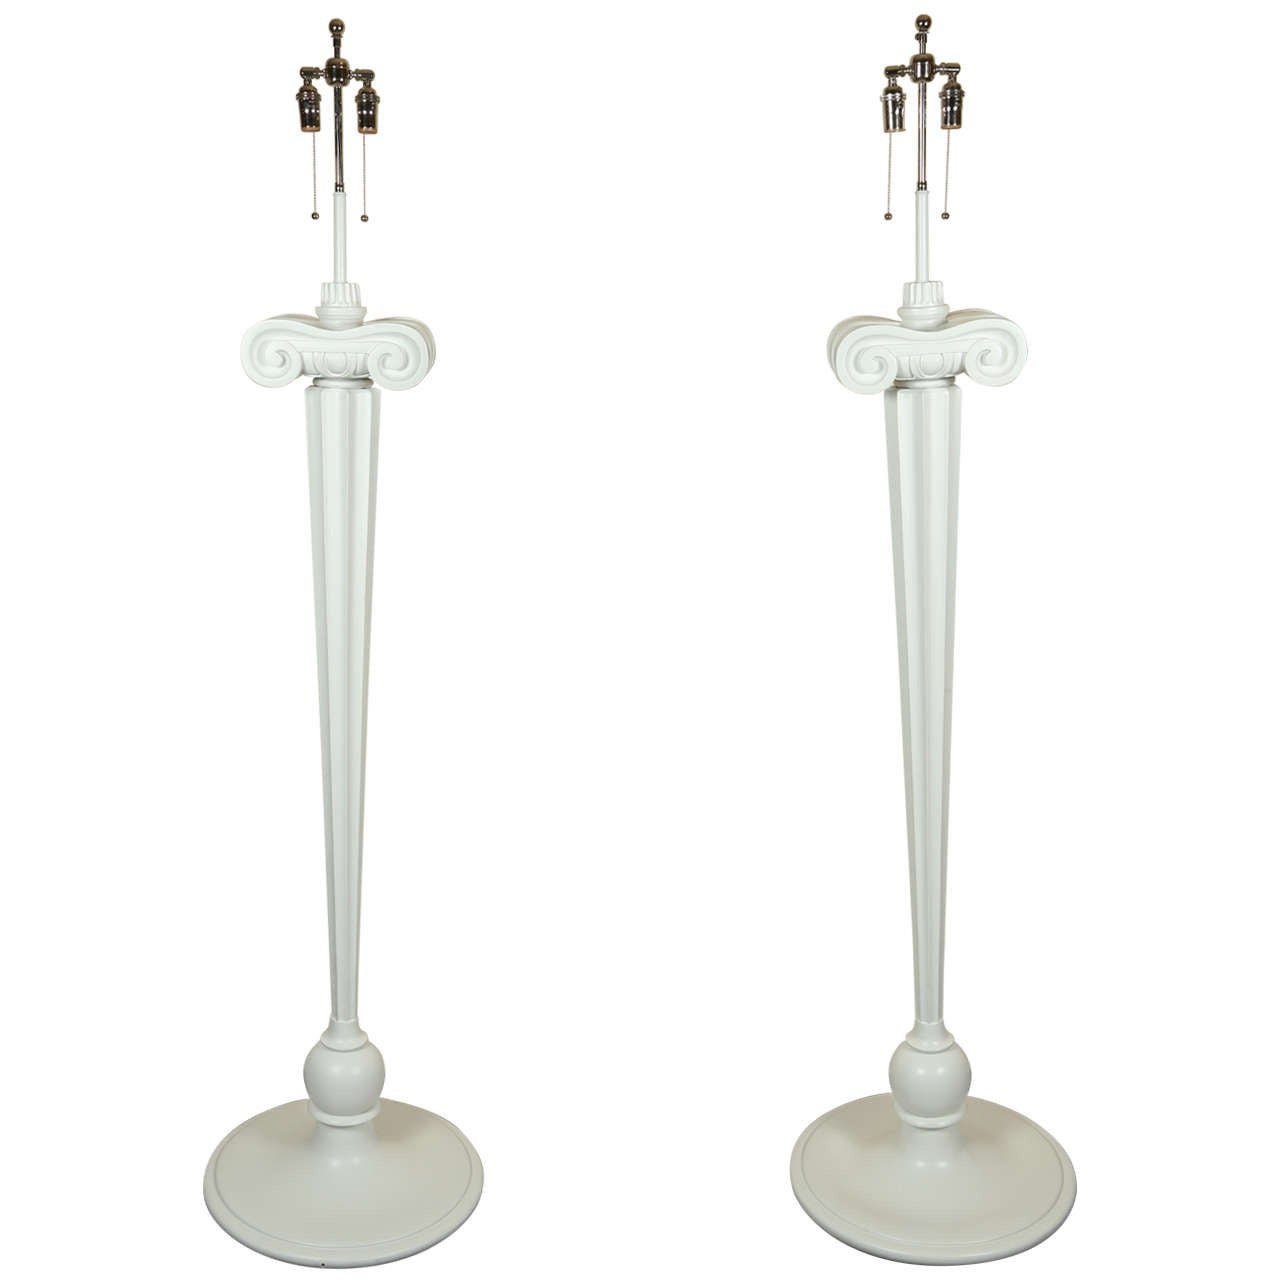 Spectacular Pair of Hollywood Regency Style Floor Lamps from Eden Roc Hotel